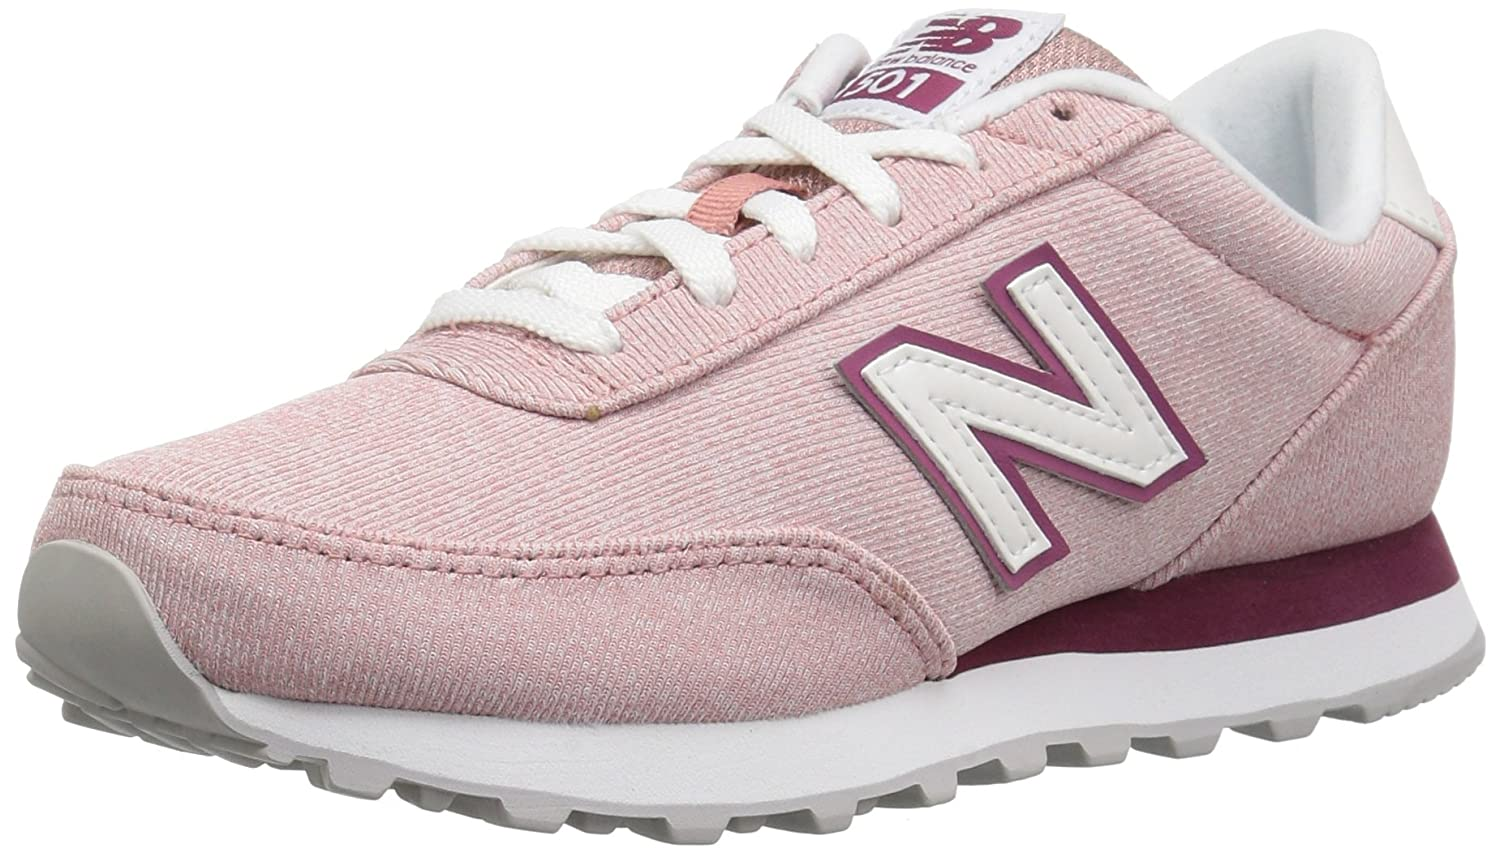 New Balance Women's 501v1 Sneaker B0751FKYCR 5.5 B(M) US|Dusted Peach/Dragon Fruit